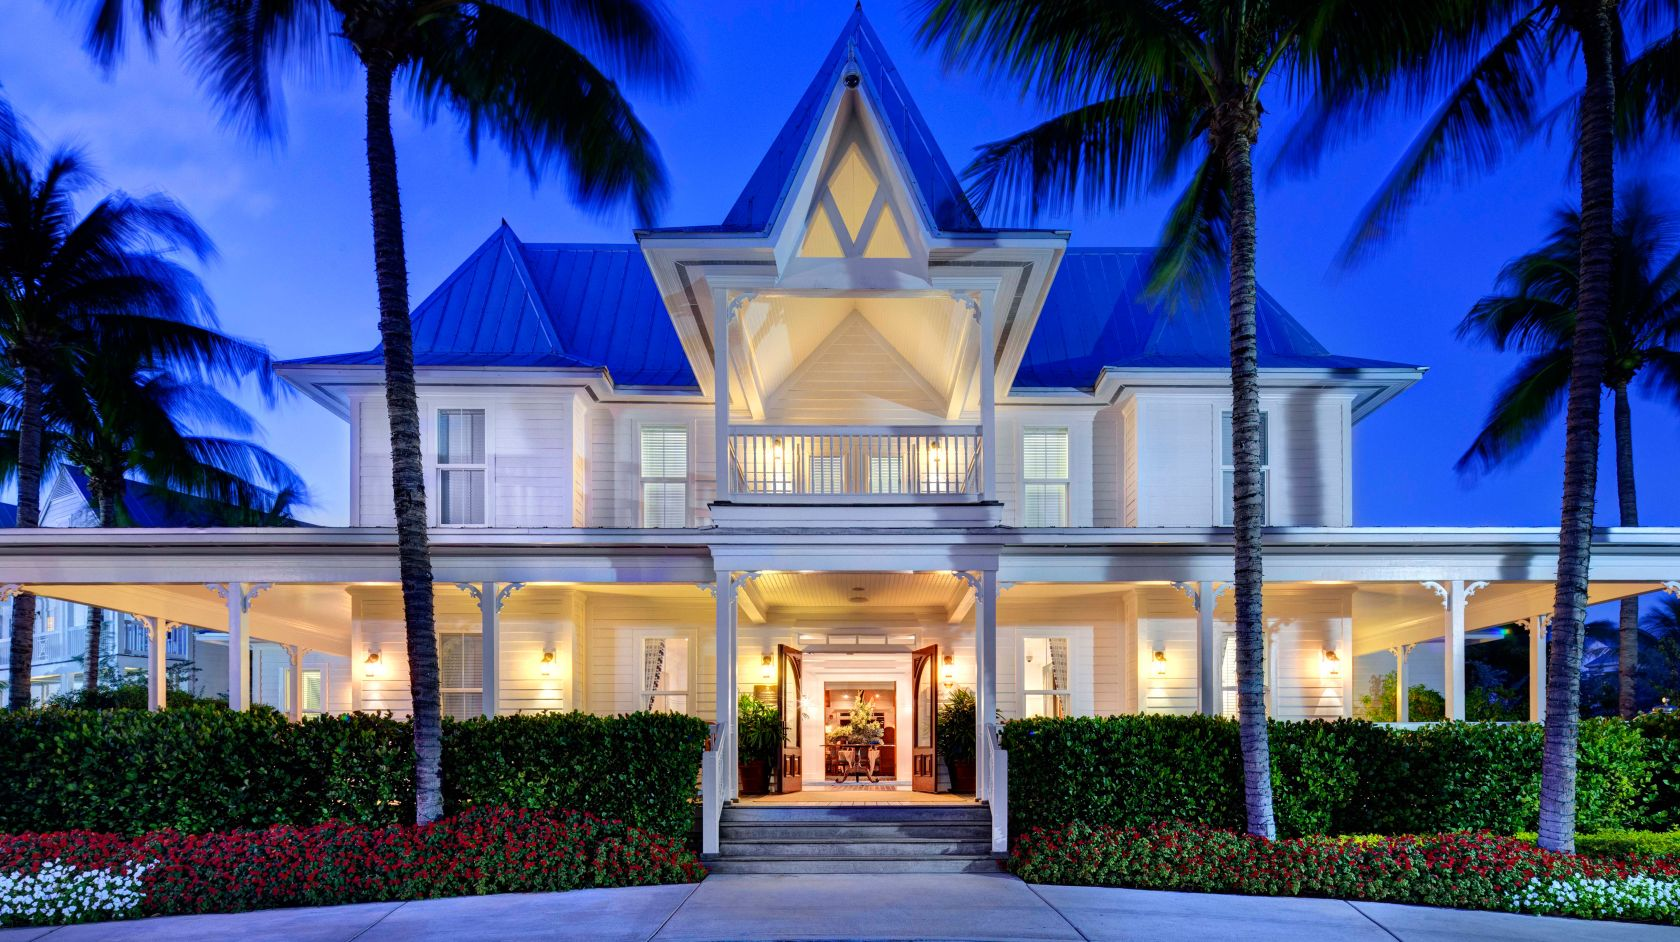 Explore Singh Resorts' Luxury Key West Hotels - Tranquility Bay at Night